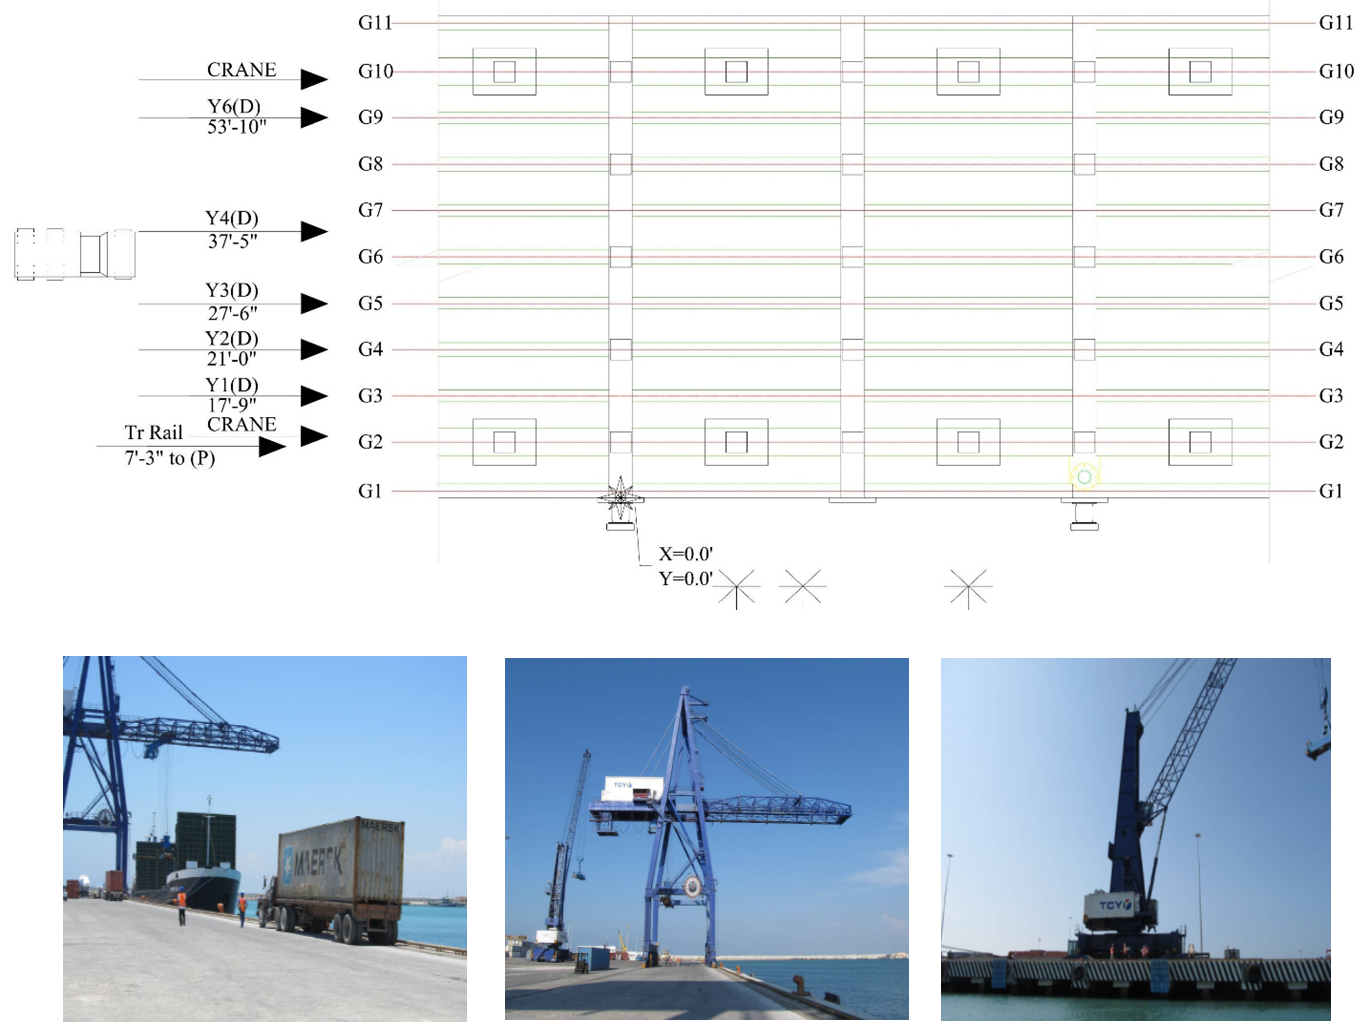 General truckload position plan and load types applied during testing (from left to right, truck, gantry and Gottwald cranes).